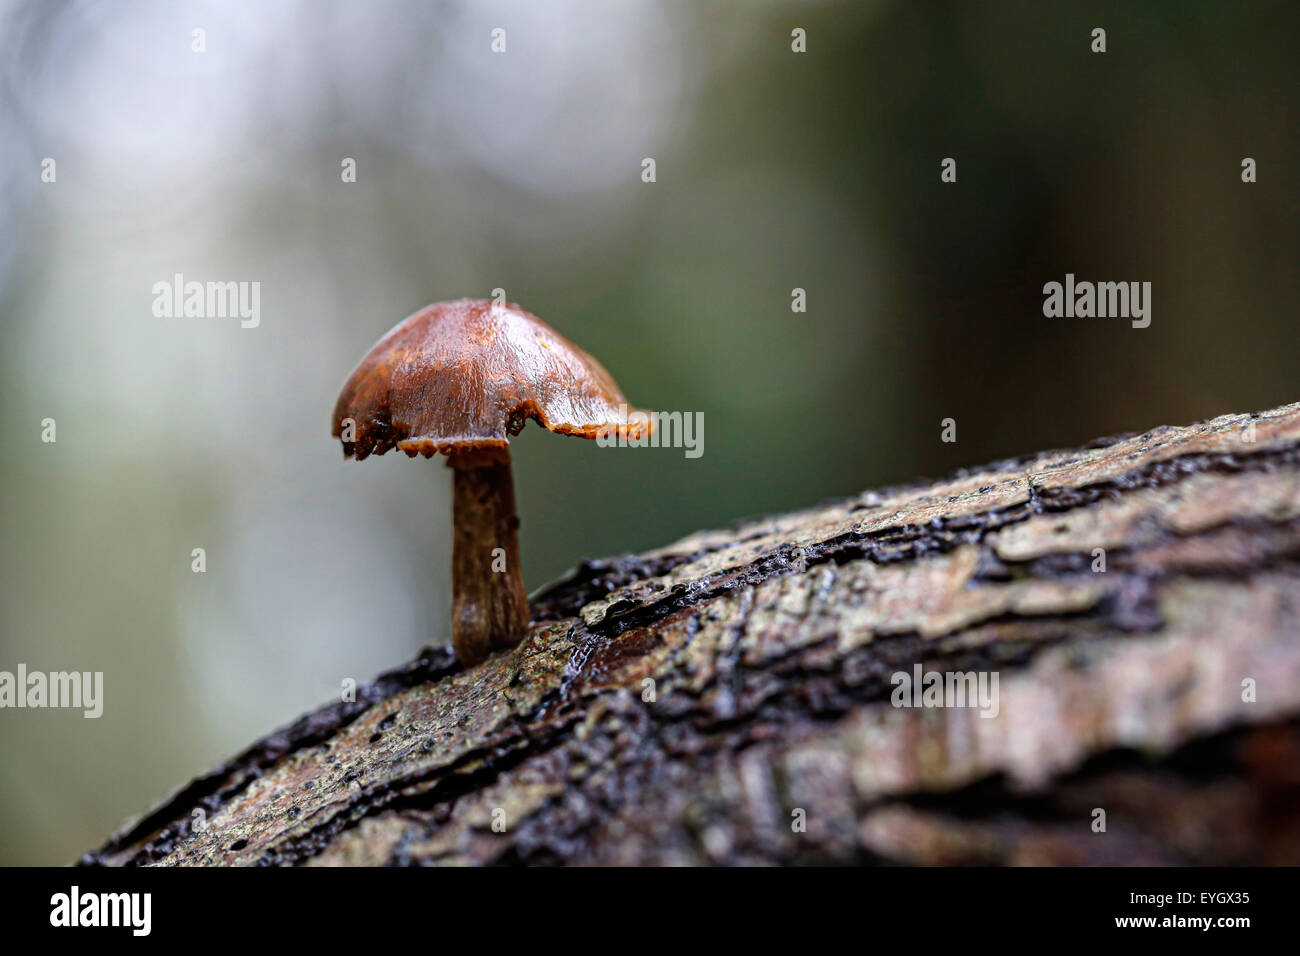 A sigle sulphur tuft mushrooms, Hypholoma fasciculare, growing in a damp, wet tree hollow in an English woodland - Stock Image